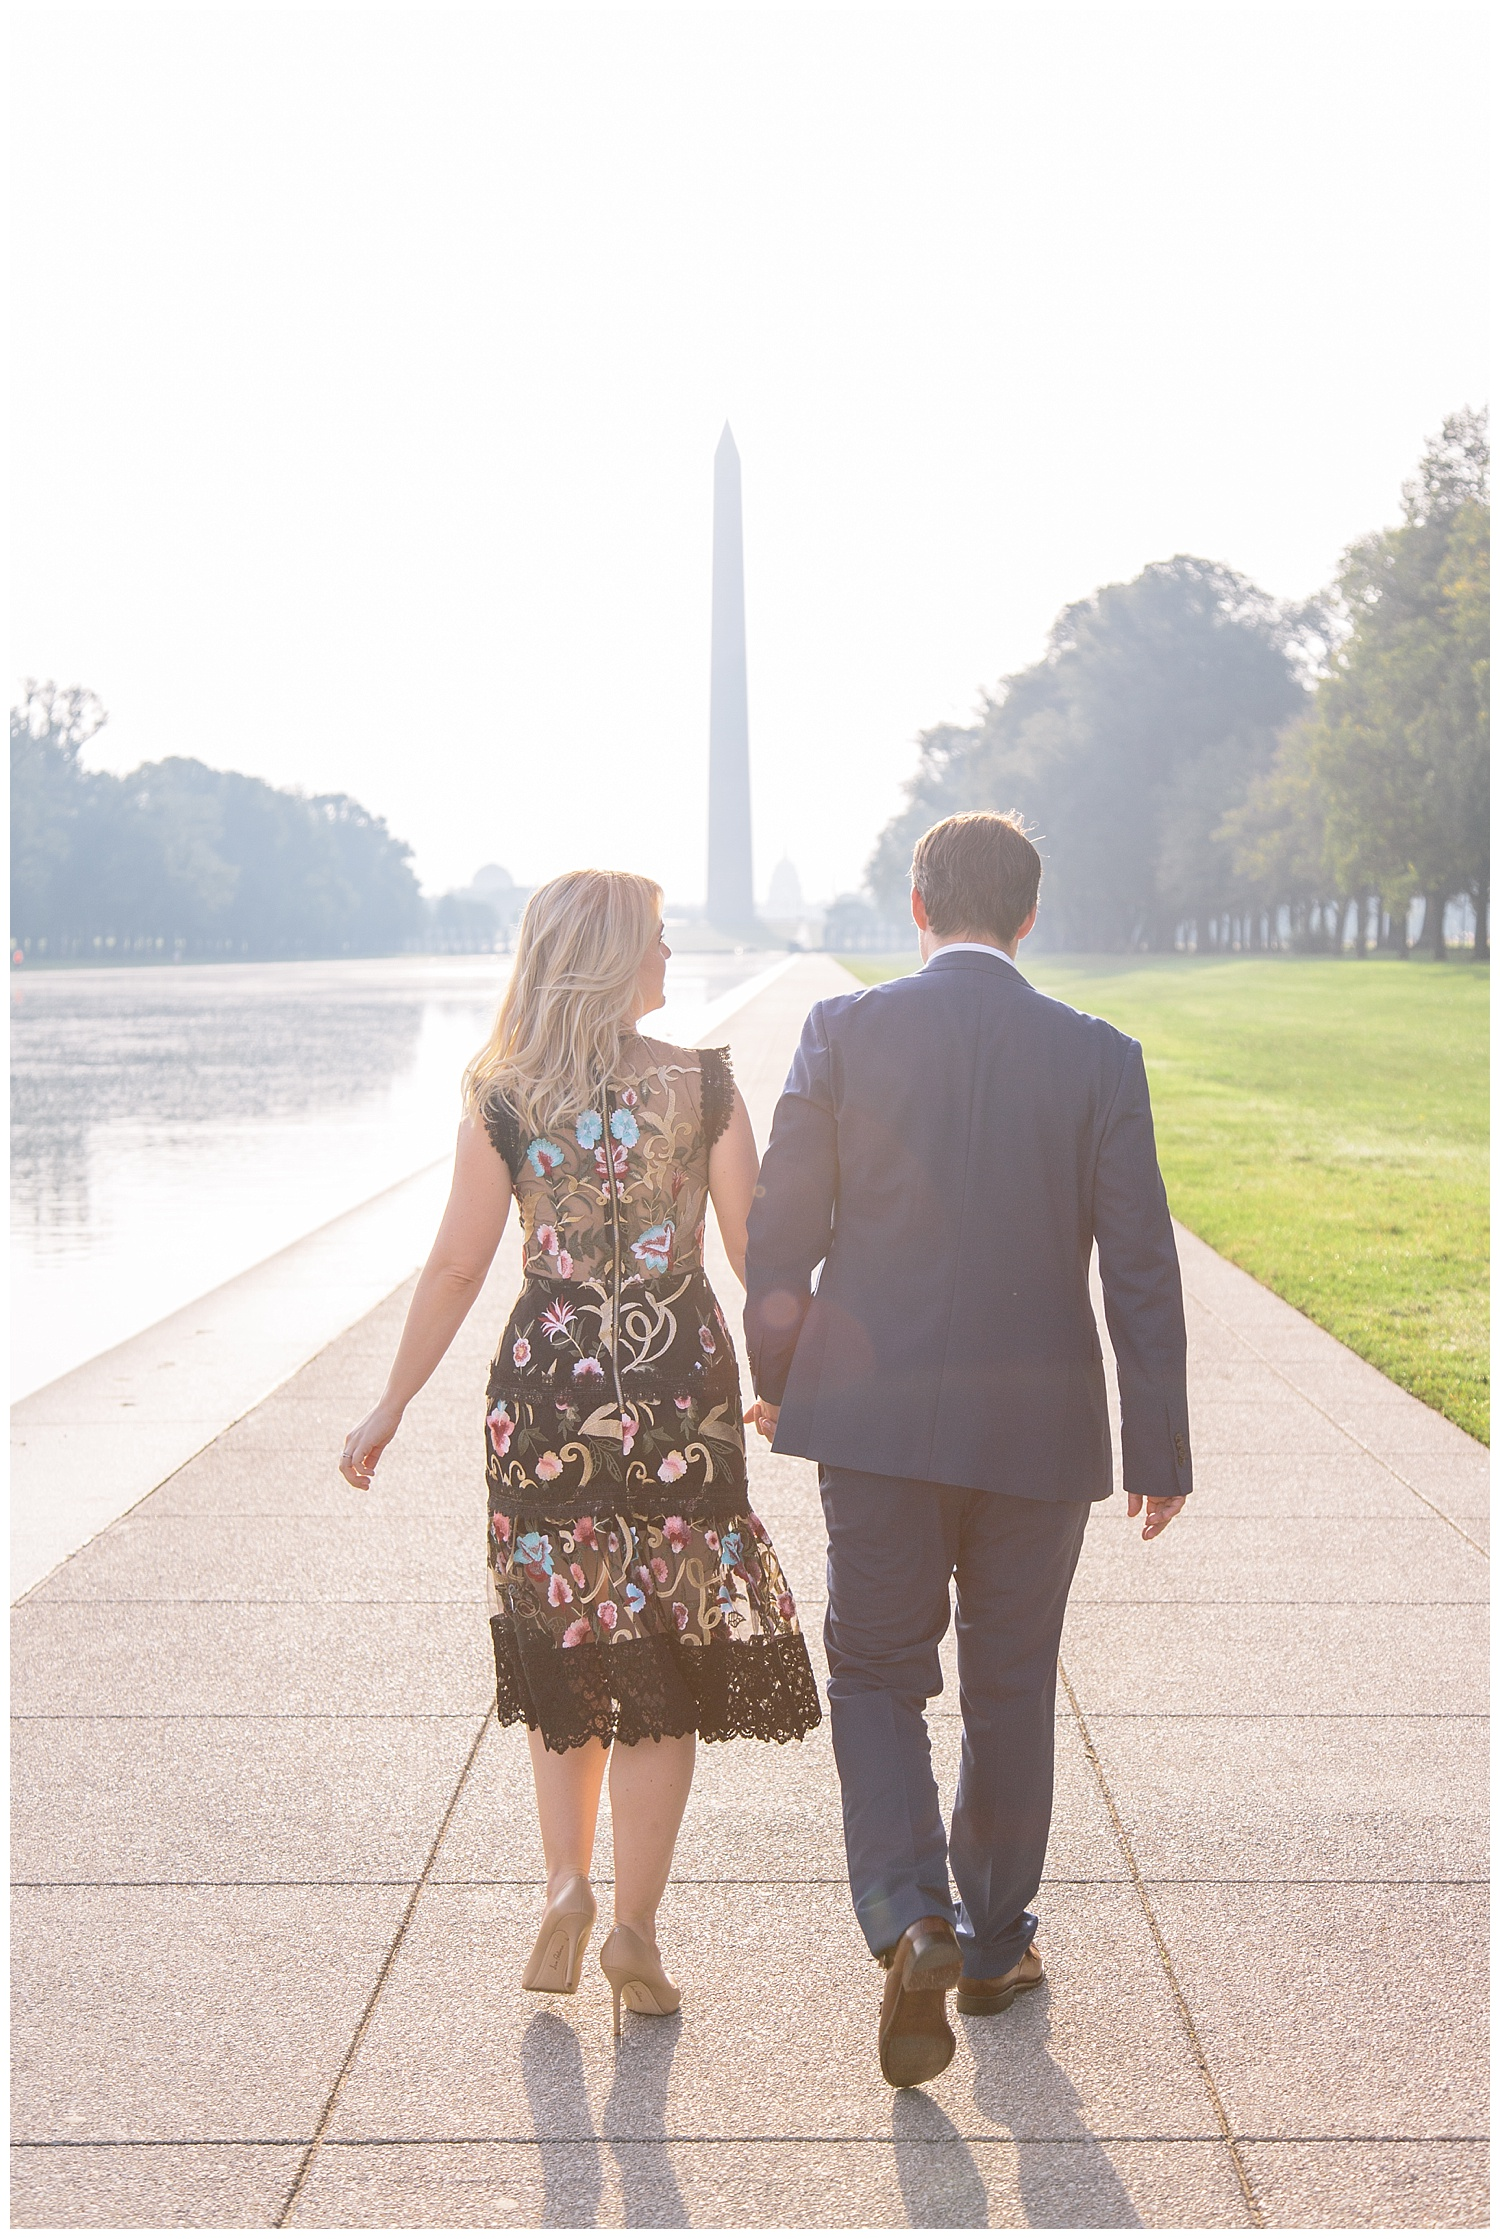 emily-belson-photography-washington-dc-engagement-emily-john-08.jpg